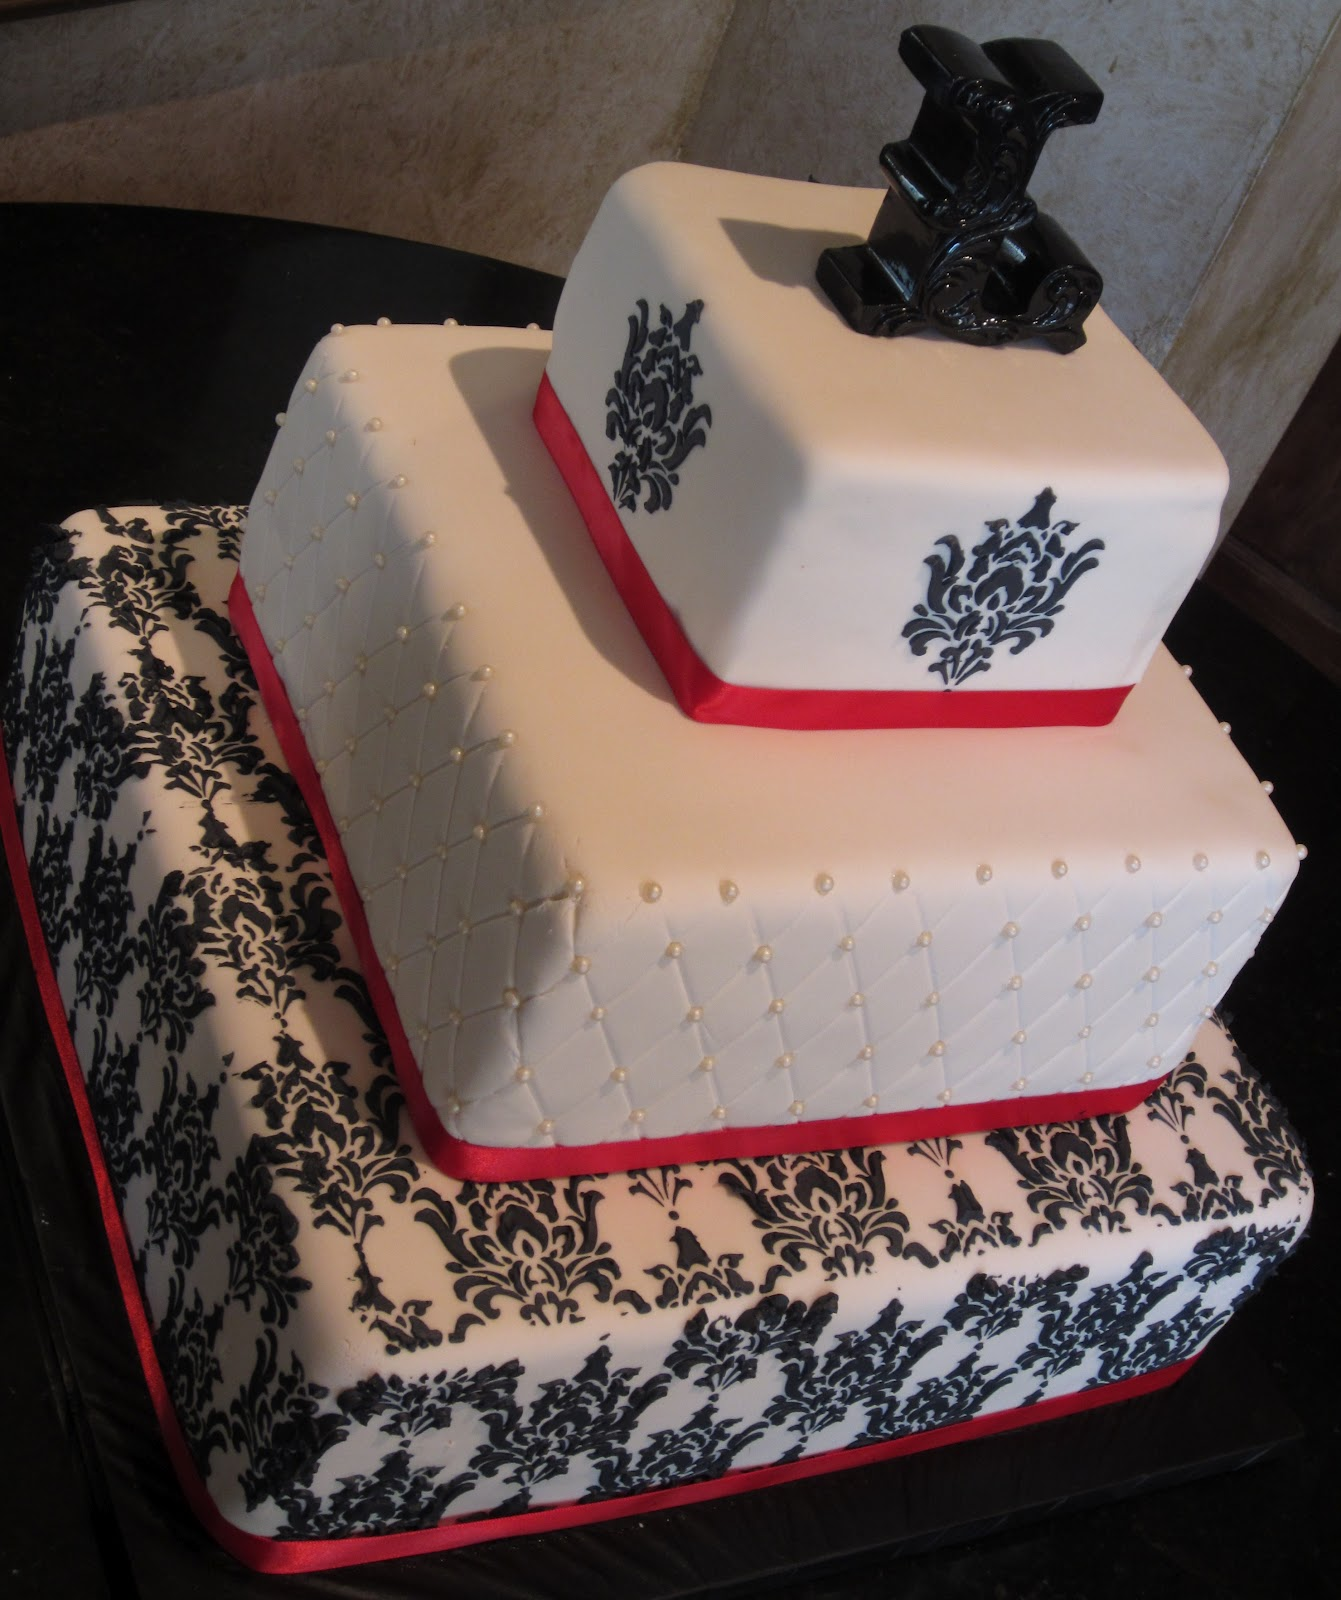 The Most Baffling Wedding Cake Ever Just Got A Beautiful: J's Cakes: Stenciled Wedding Cake